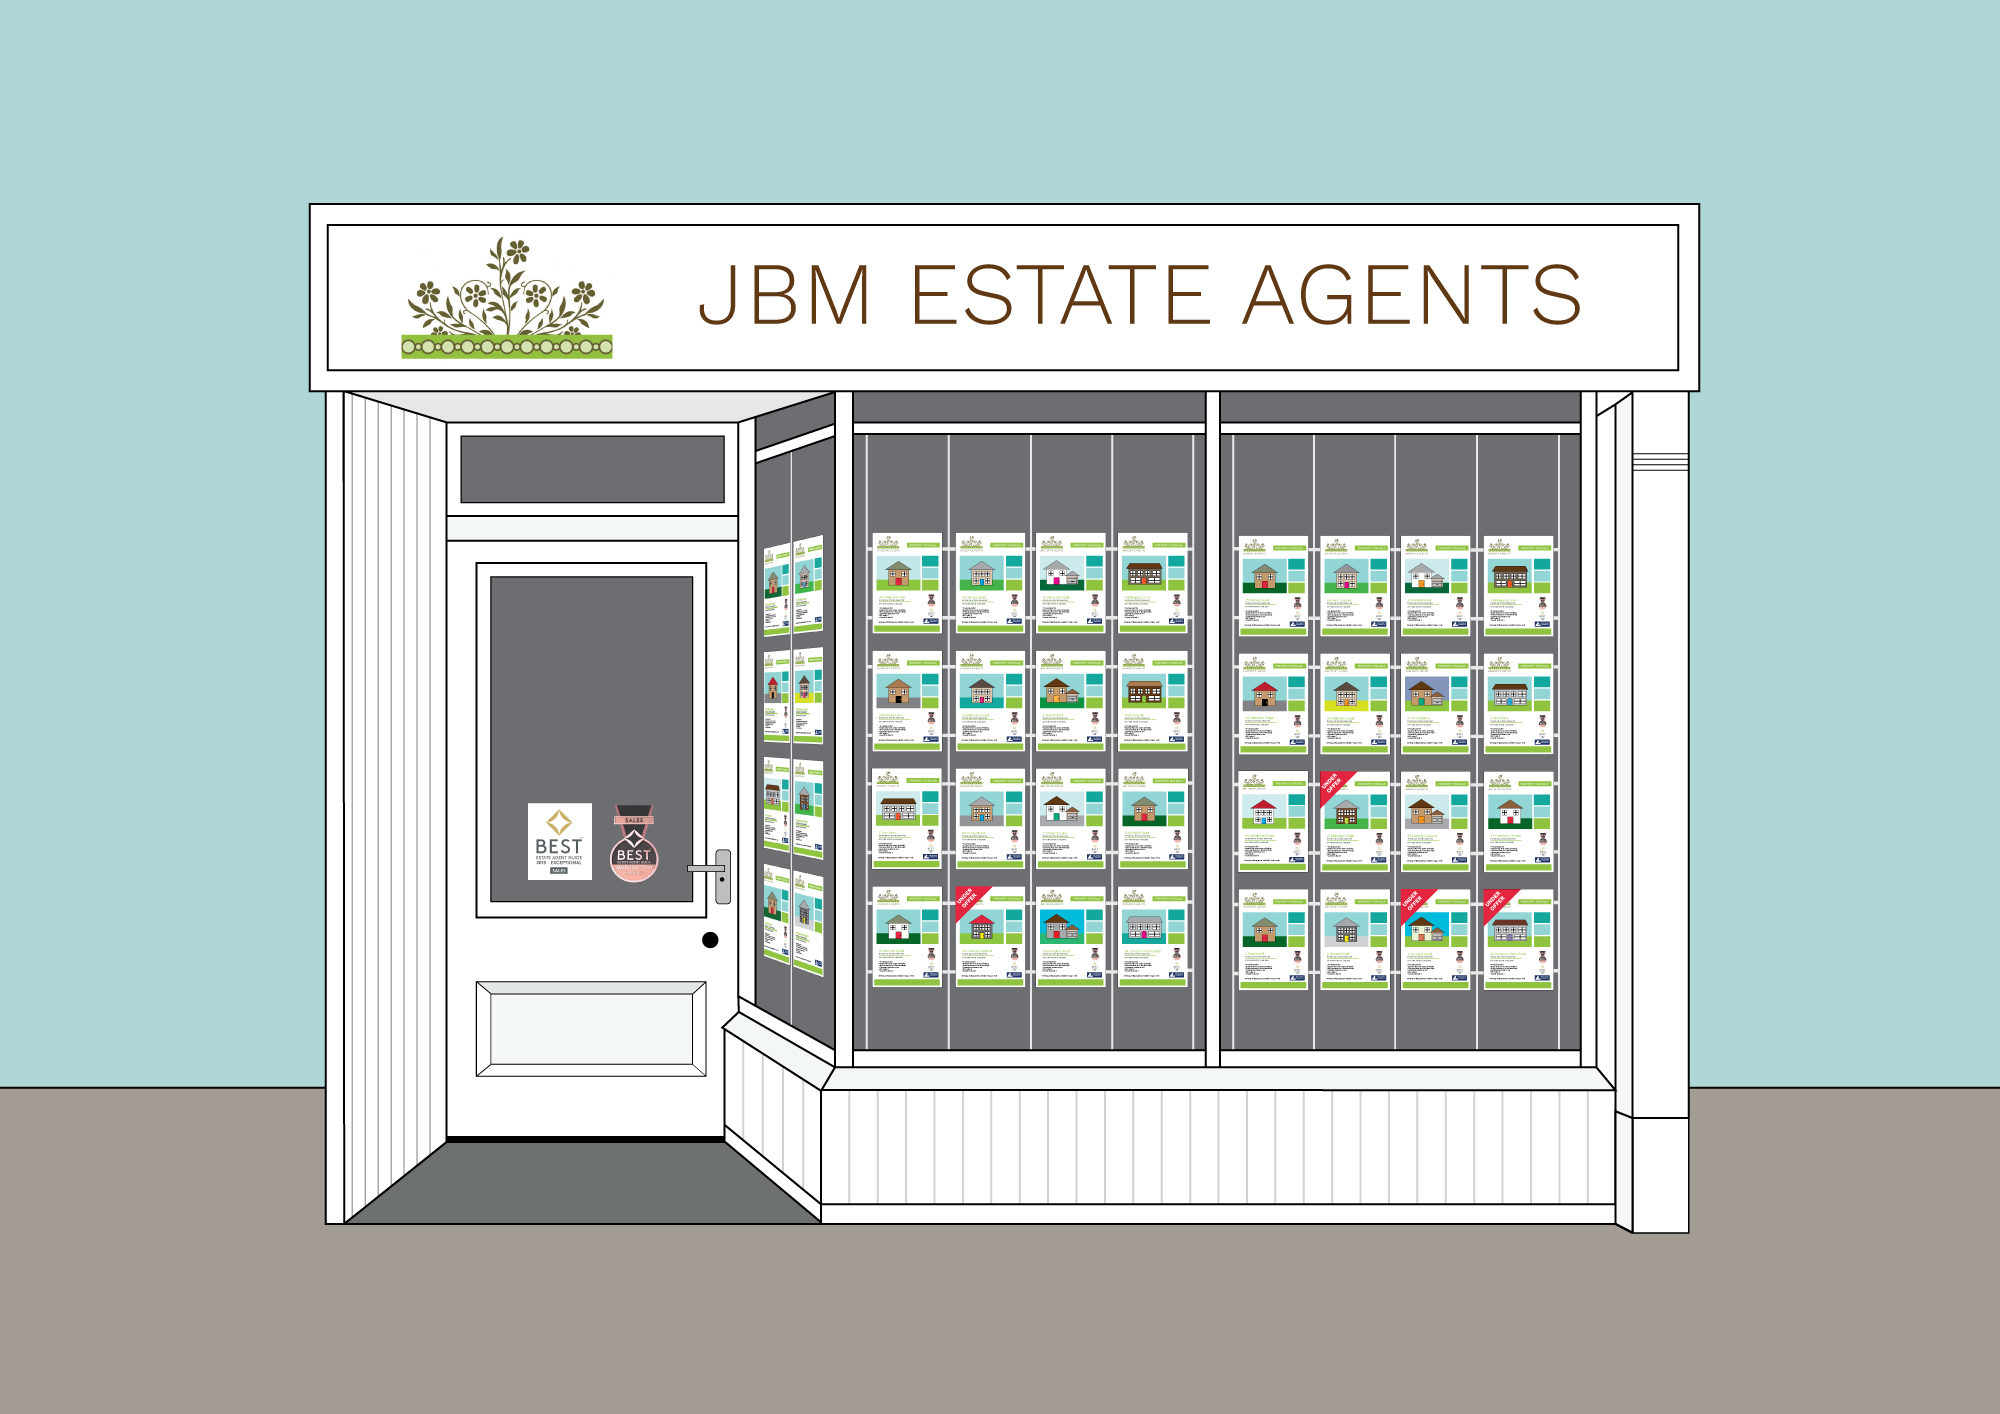 JBM Estate agents - Bespoke Graphic